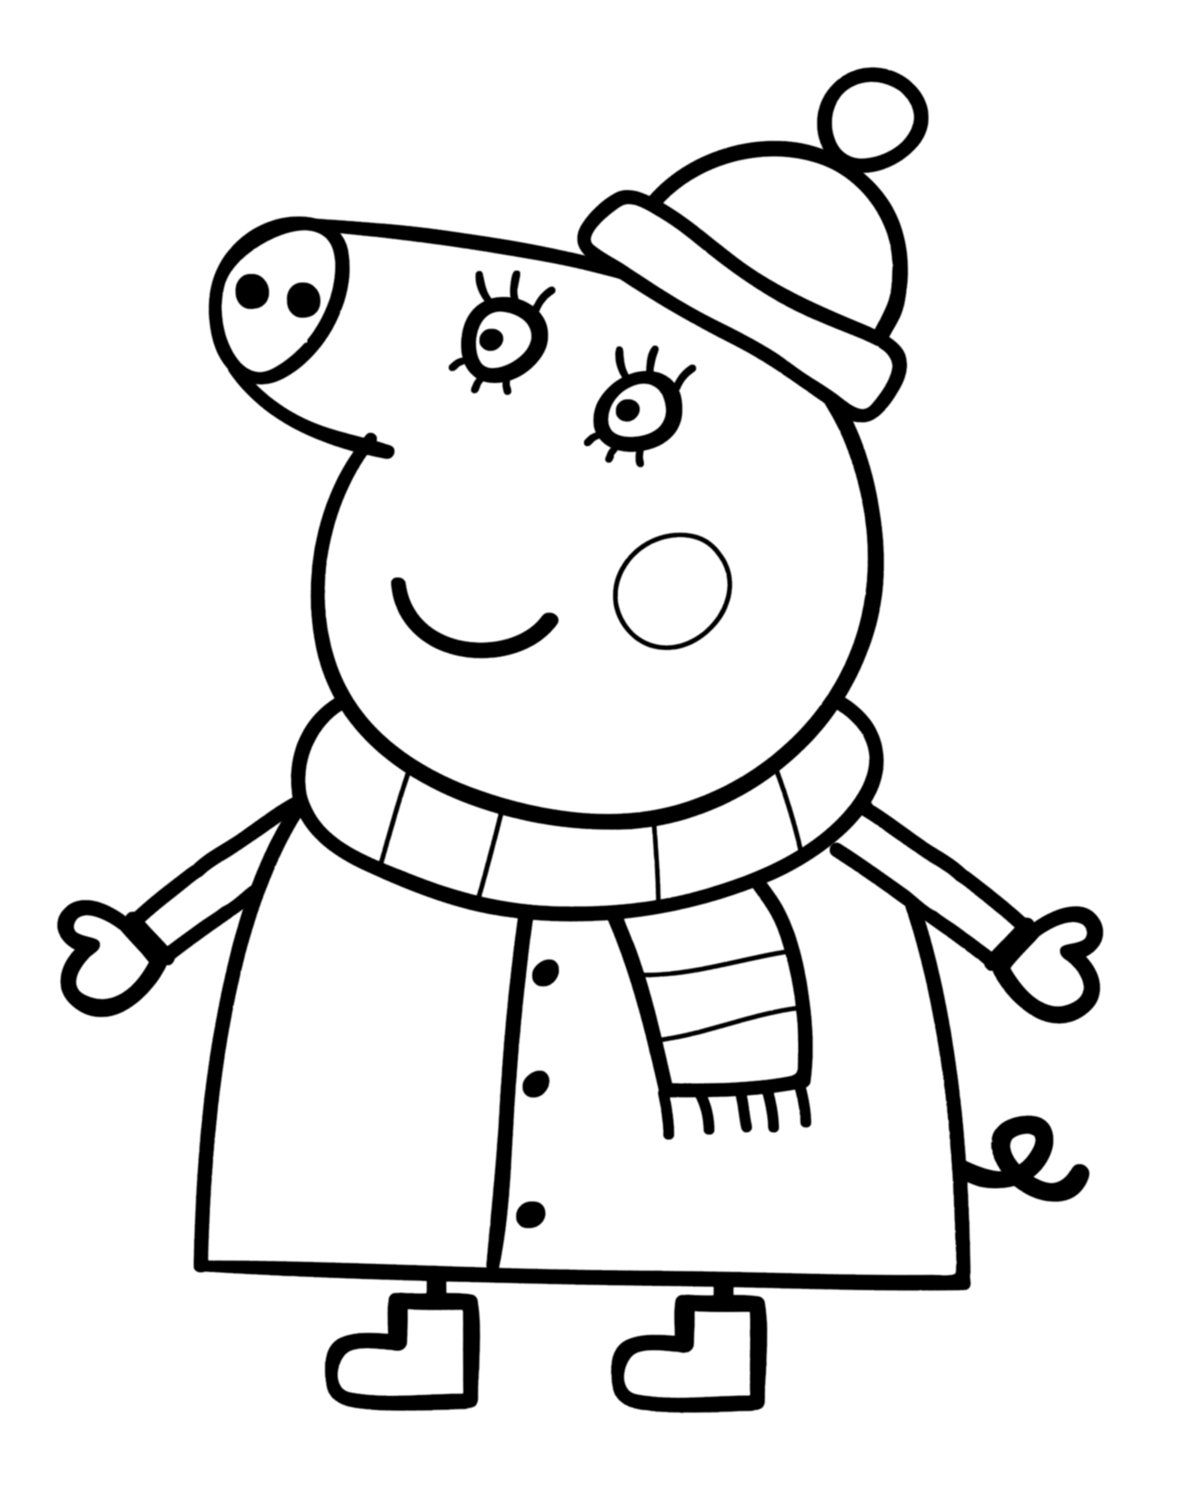 Fun Amp Learn Free Worksheets For Kid Peppa Pig Coloring Pages Peppa Pig